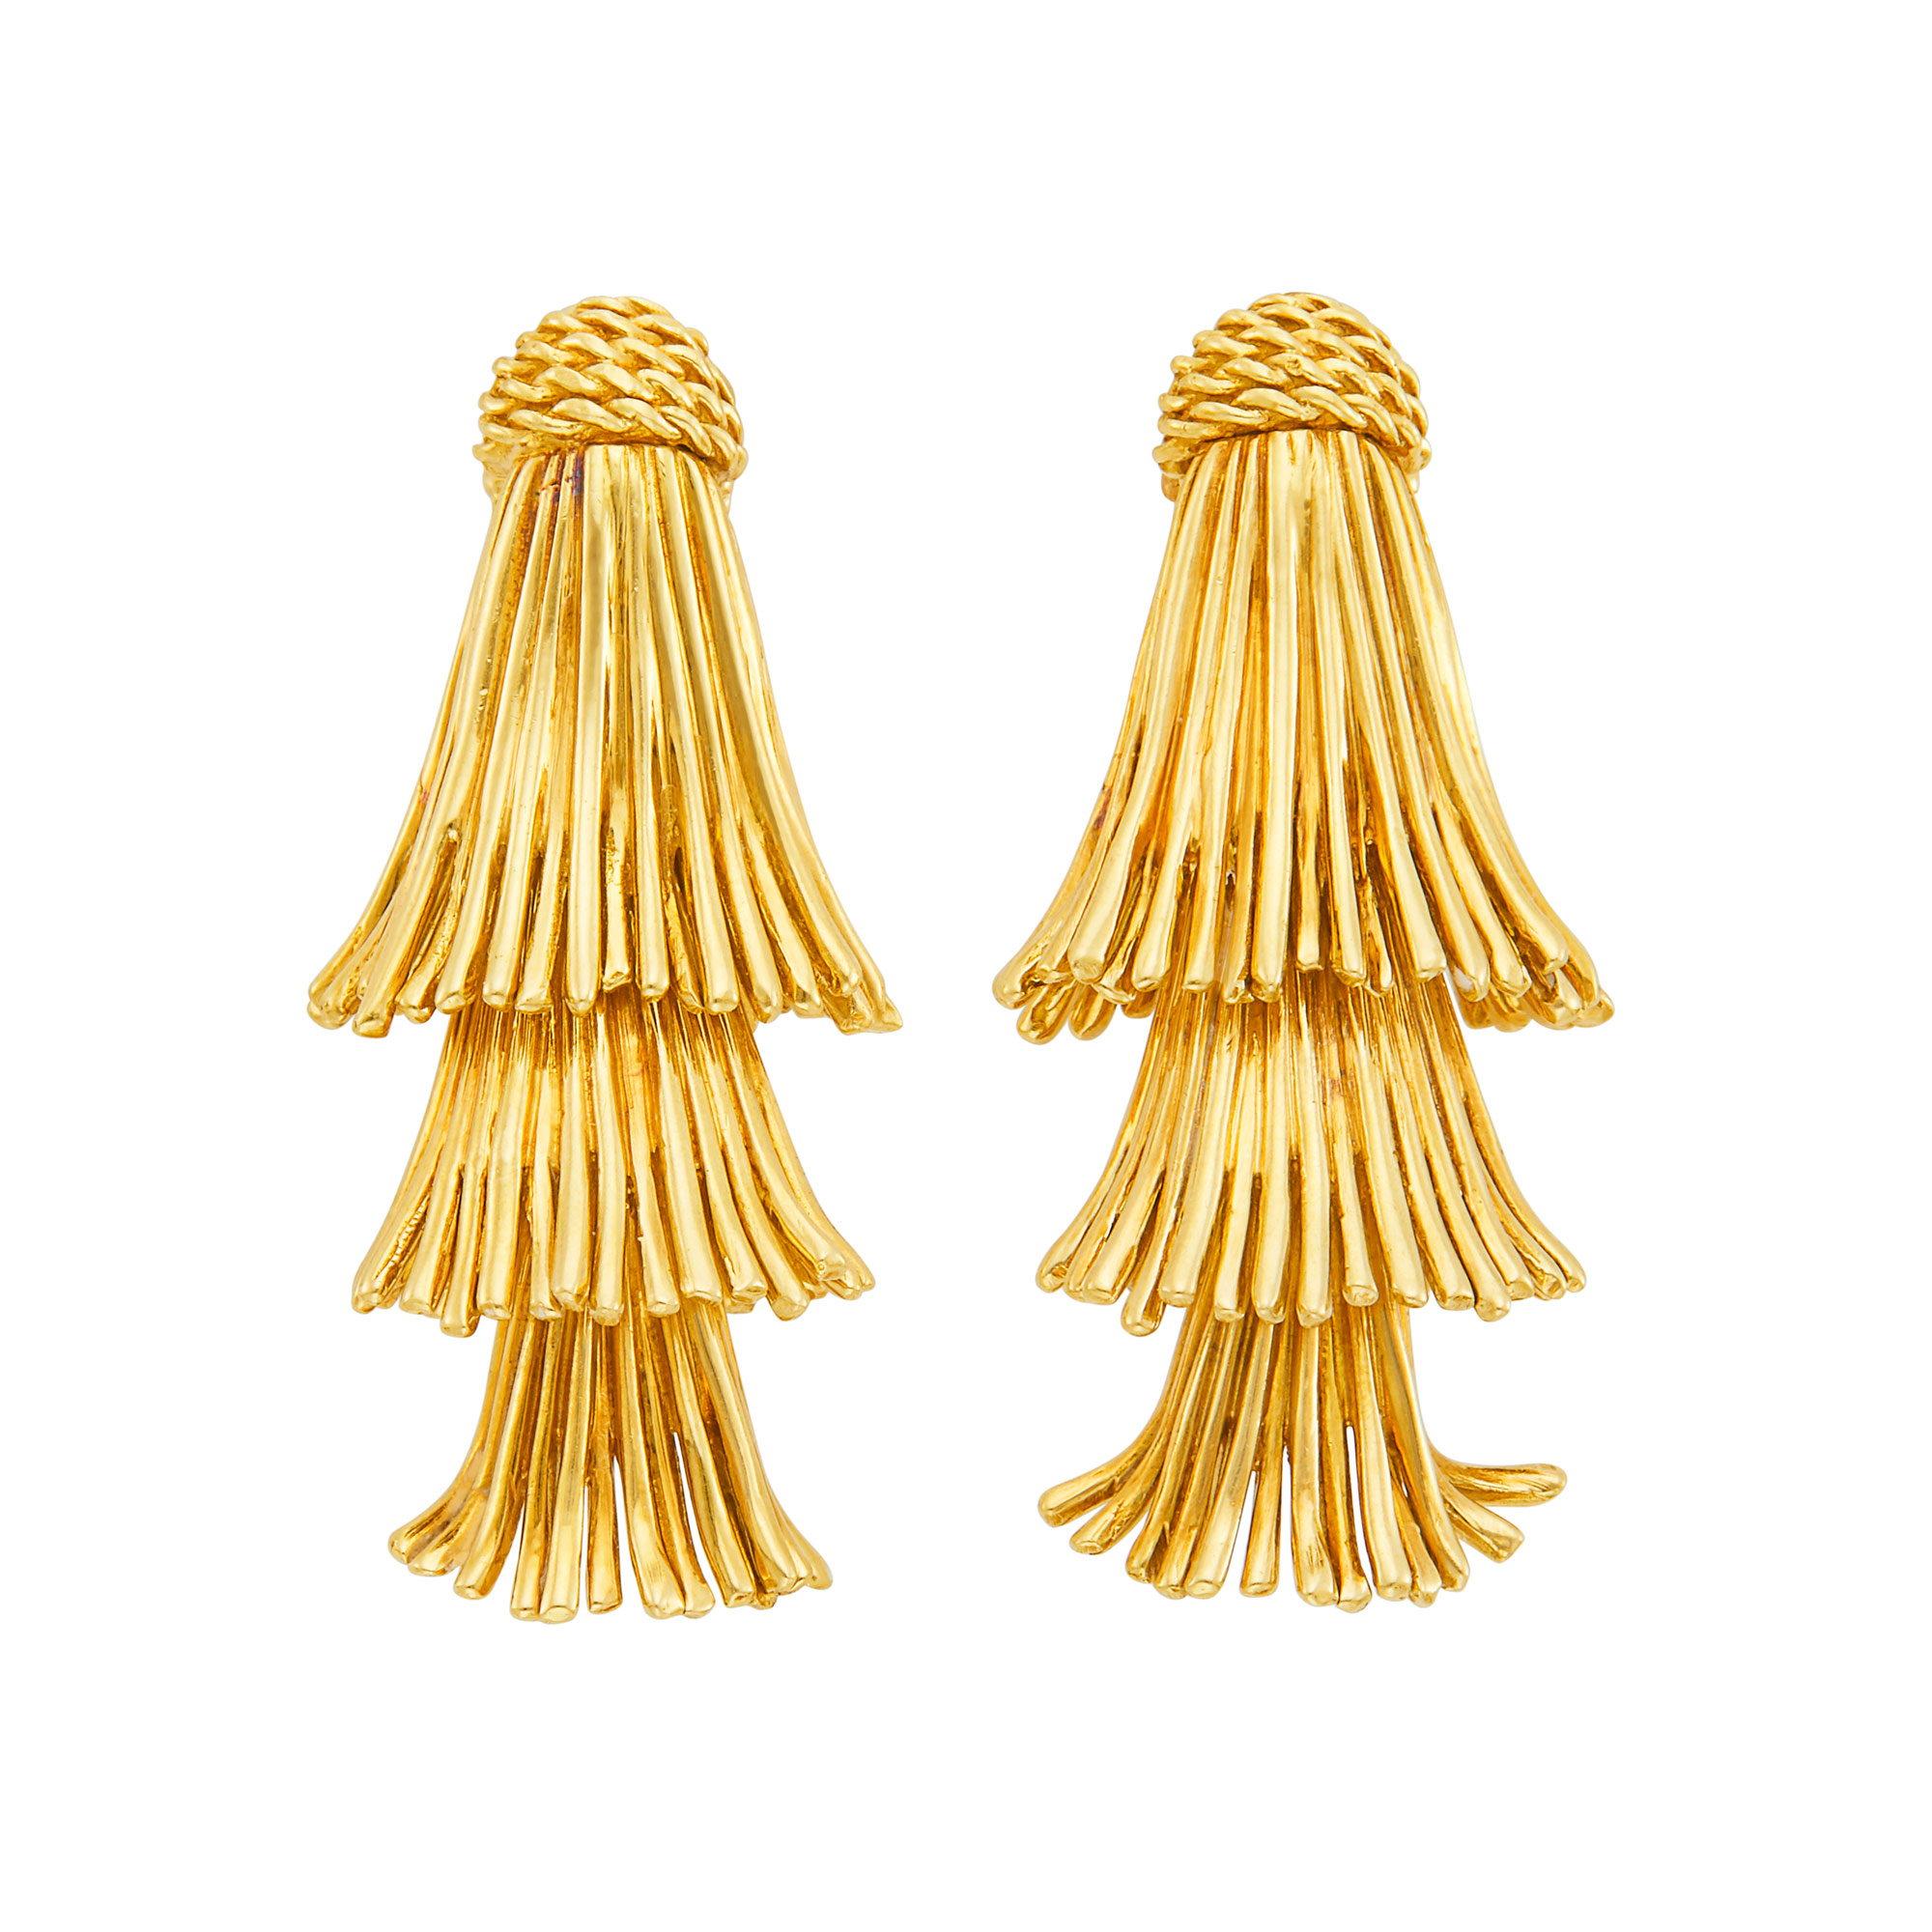 Lot image - Pair of Gold Fringe Earclips, Tiffany & Co.